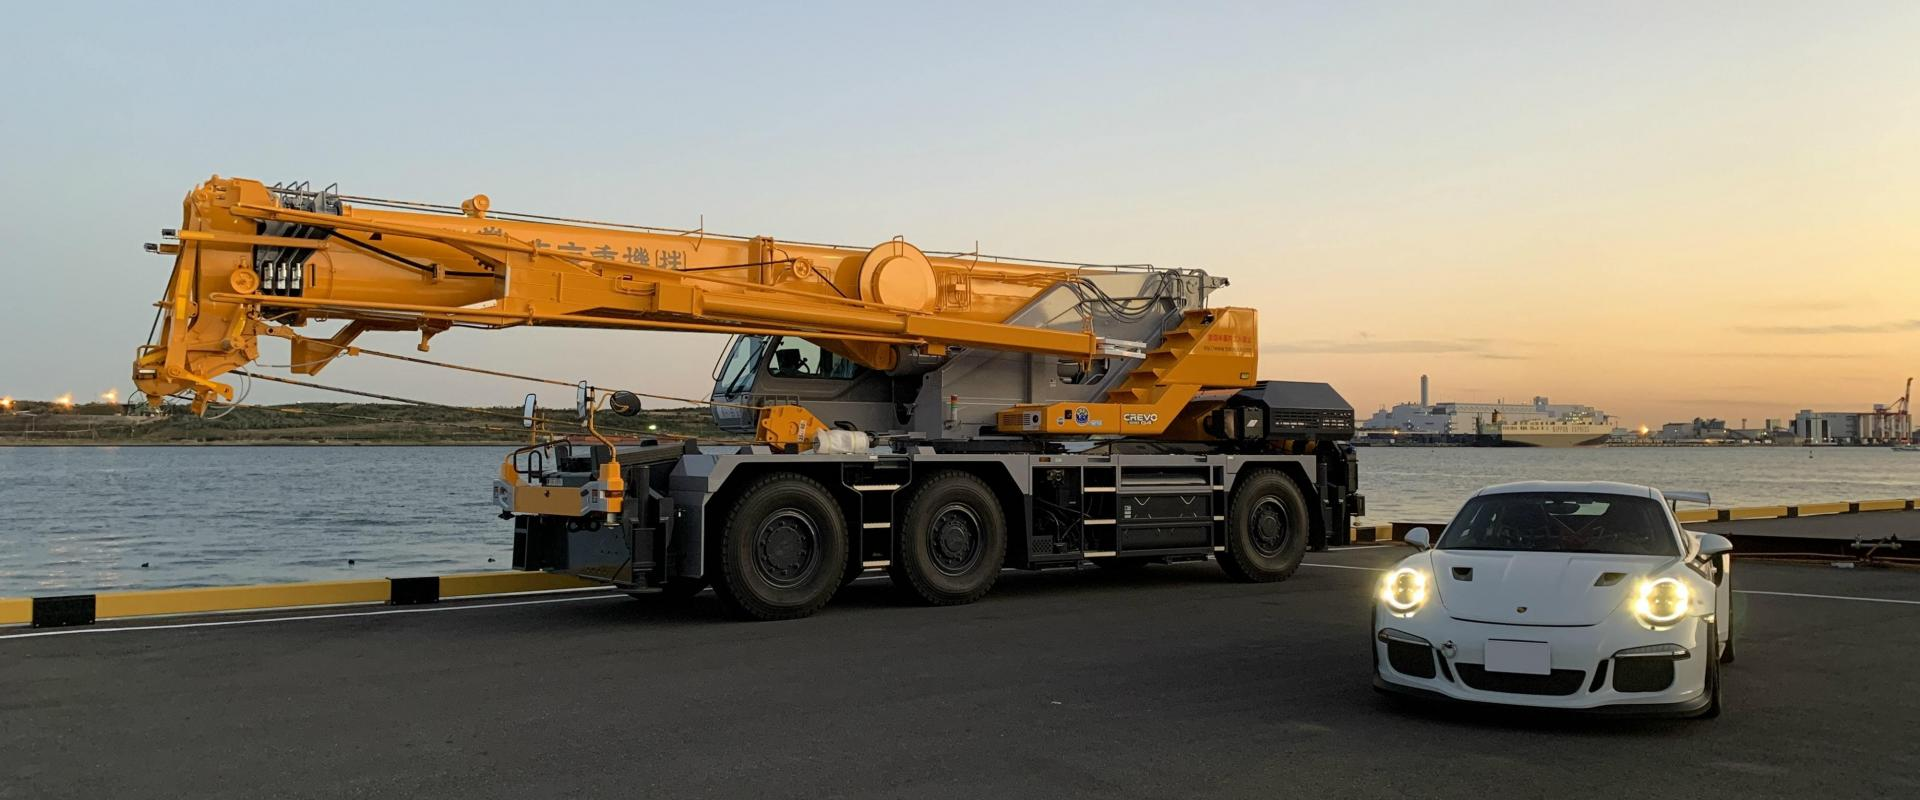 Crane Hire Business for Sale in Melbourne contact Andrew Yoannidis